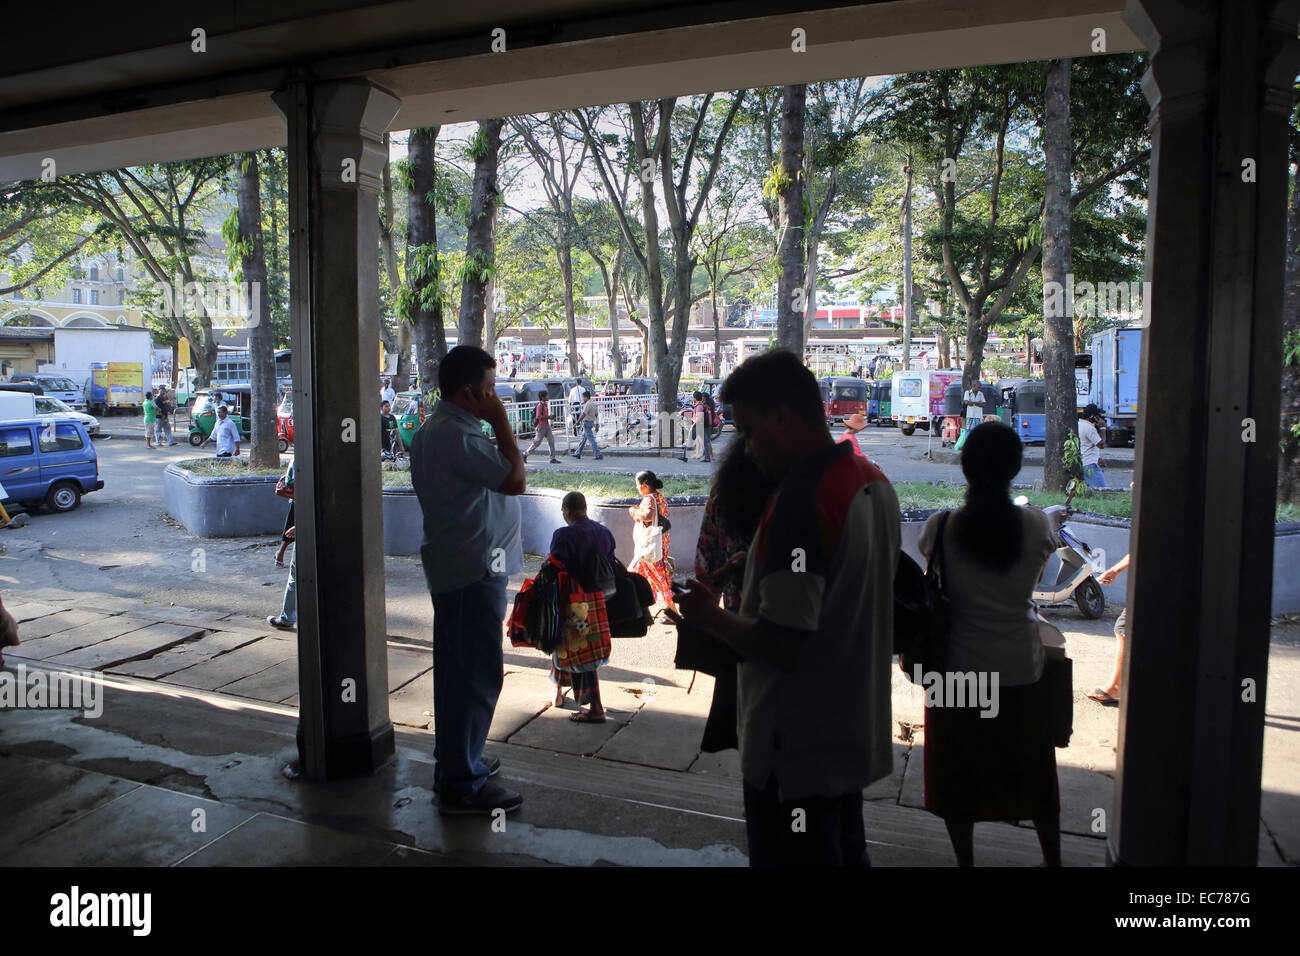 Pedestrians commuting at rush hour in Kandy, Sri Lanka - Stock Image